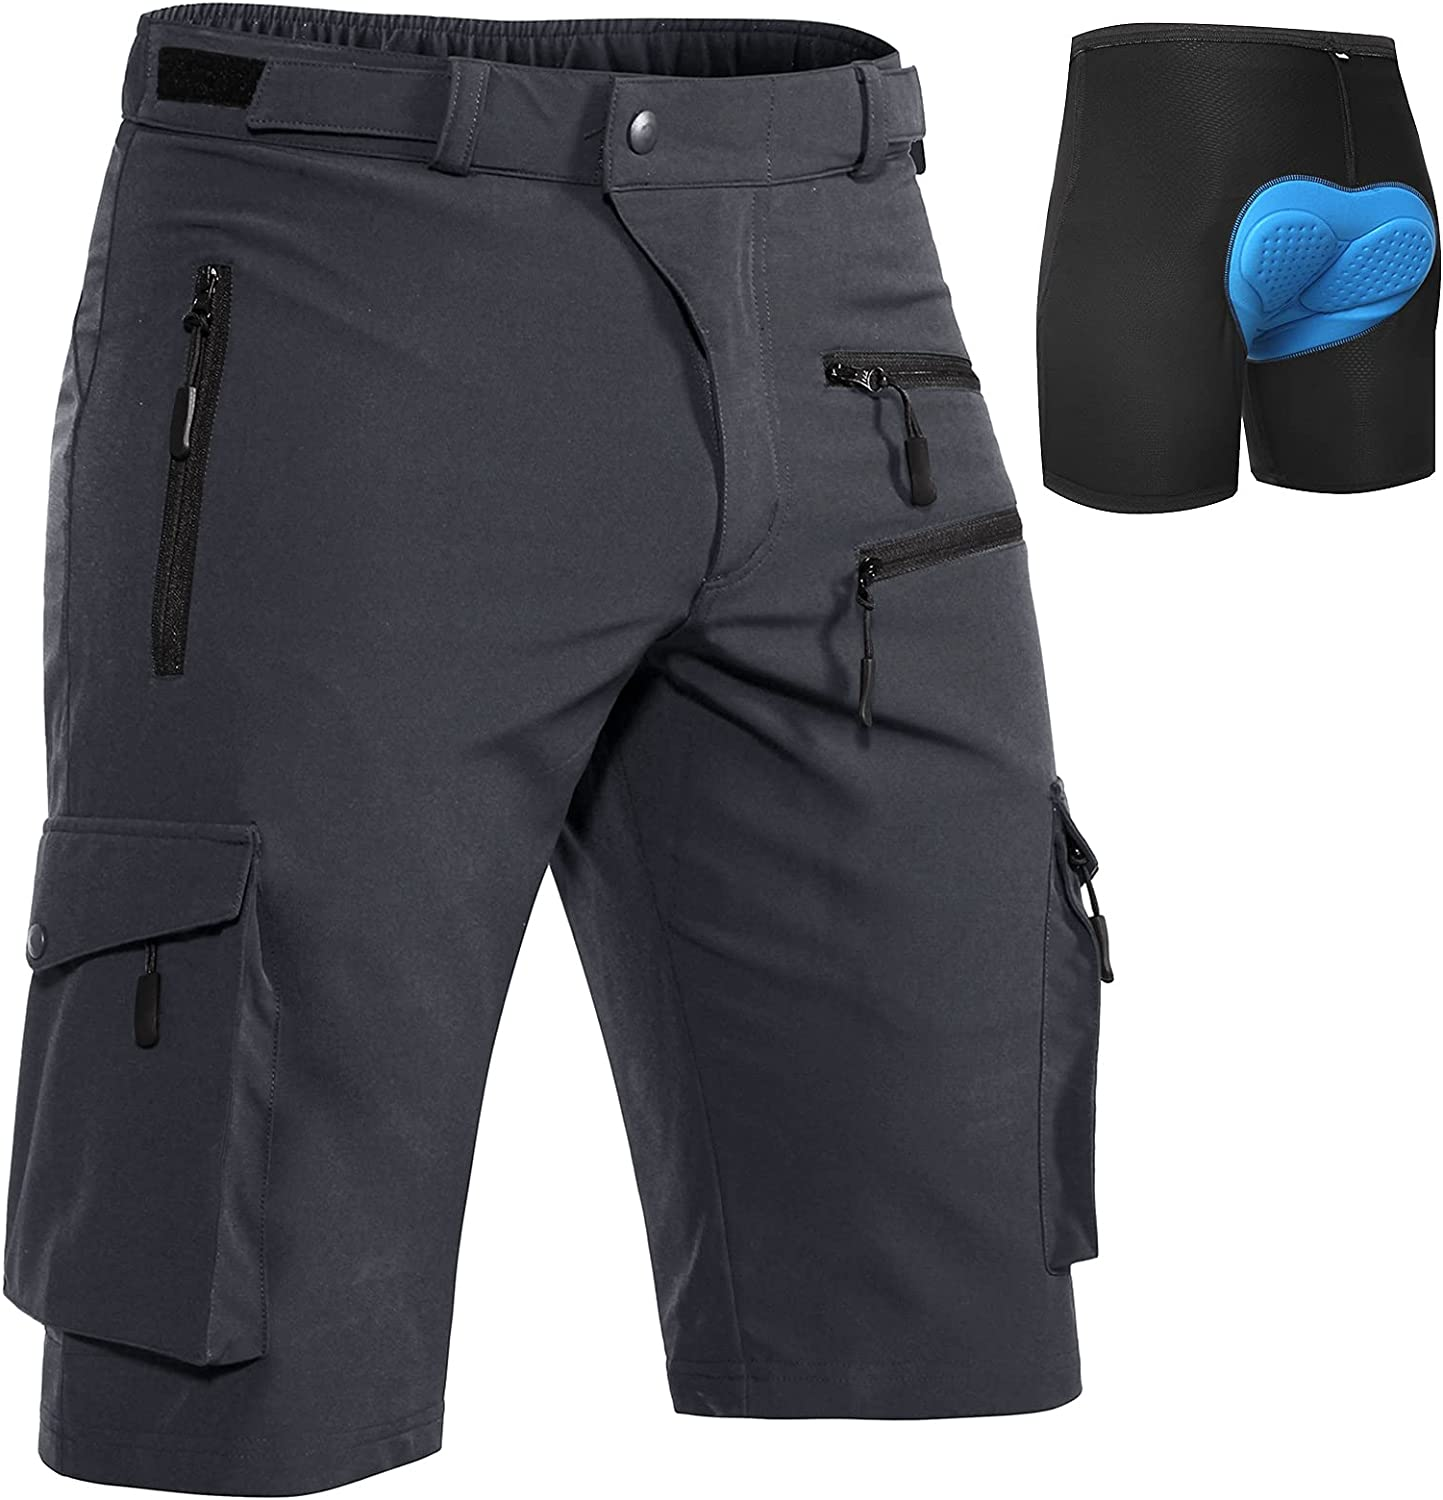 Directly managed Factory outlet store Hiauspor MTB-Shorts-Mens-Cycling-Shorts-Padded-Mountain-Bike-Sho